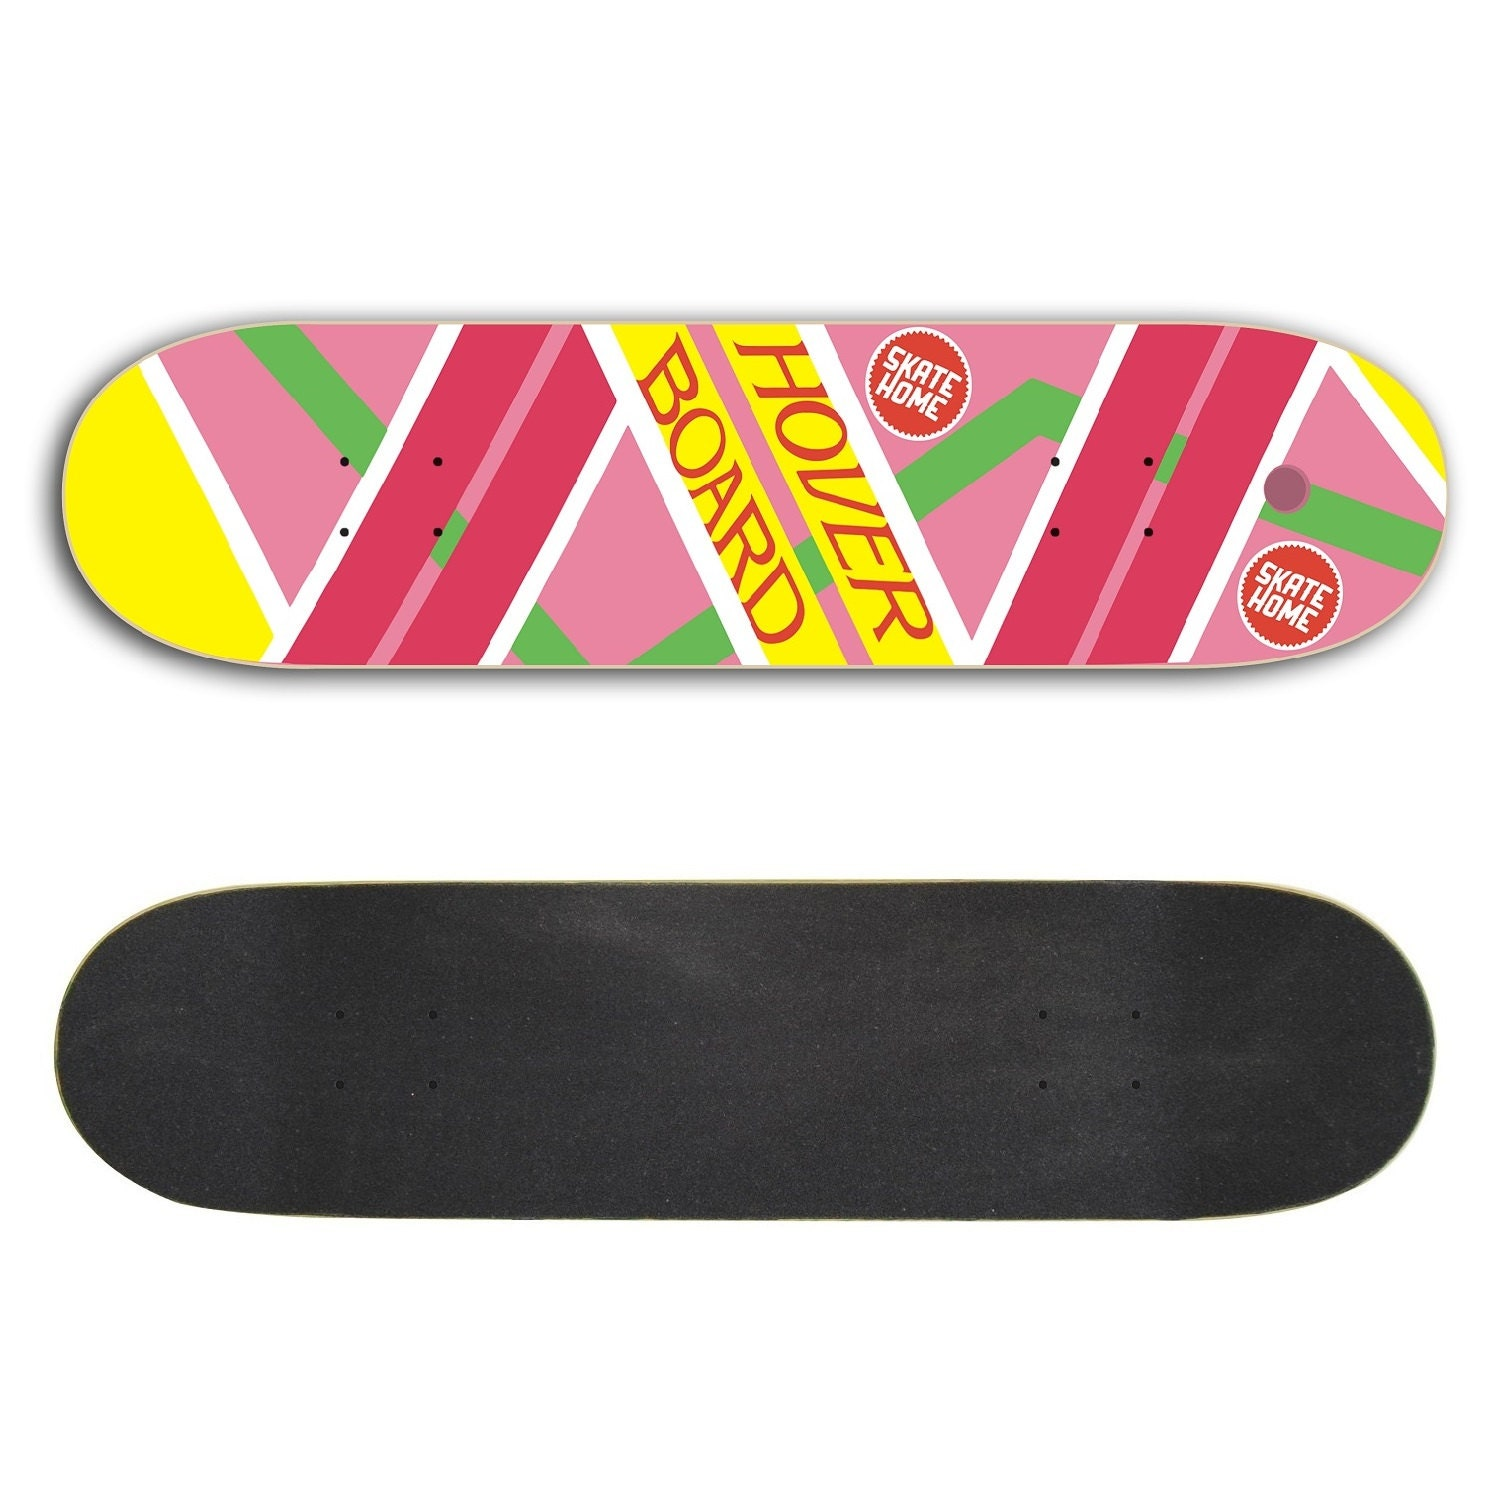 Skateboard mit Griptape Hoverboard Back To The Future